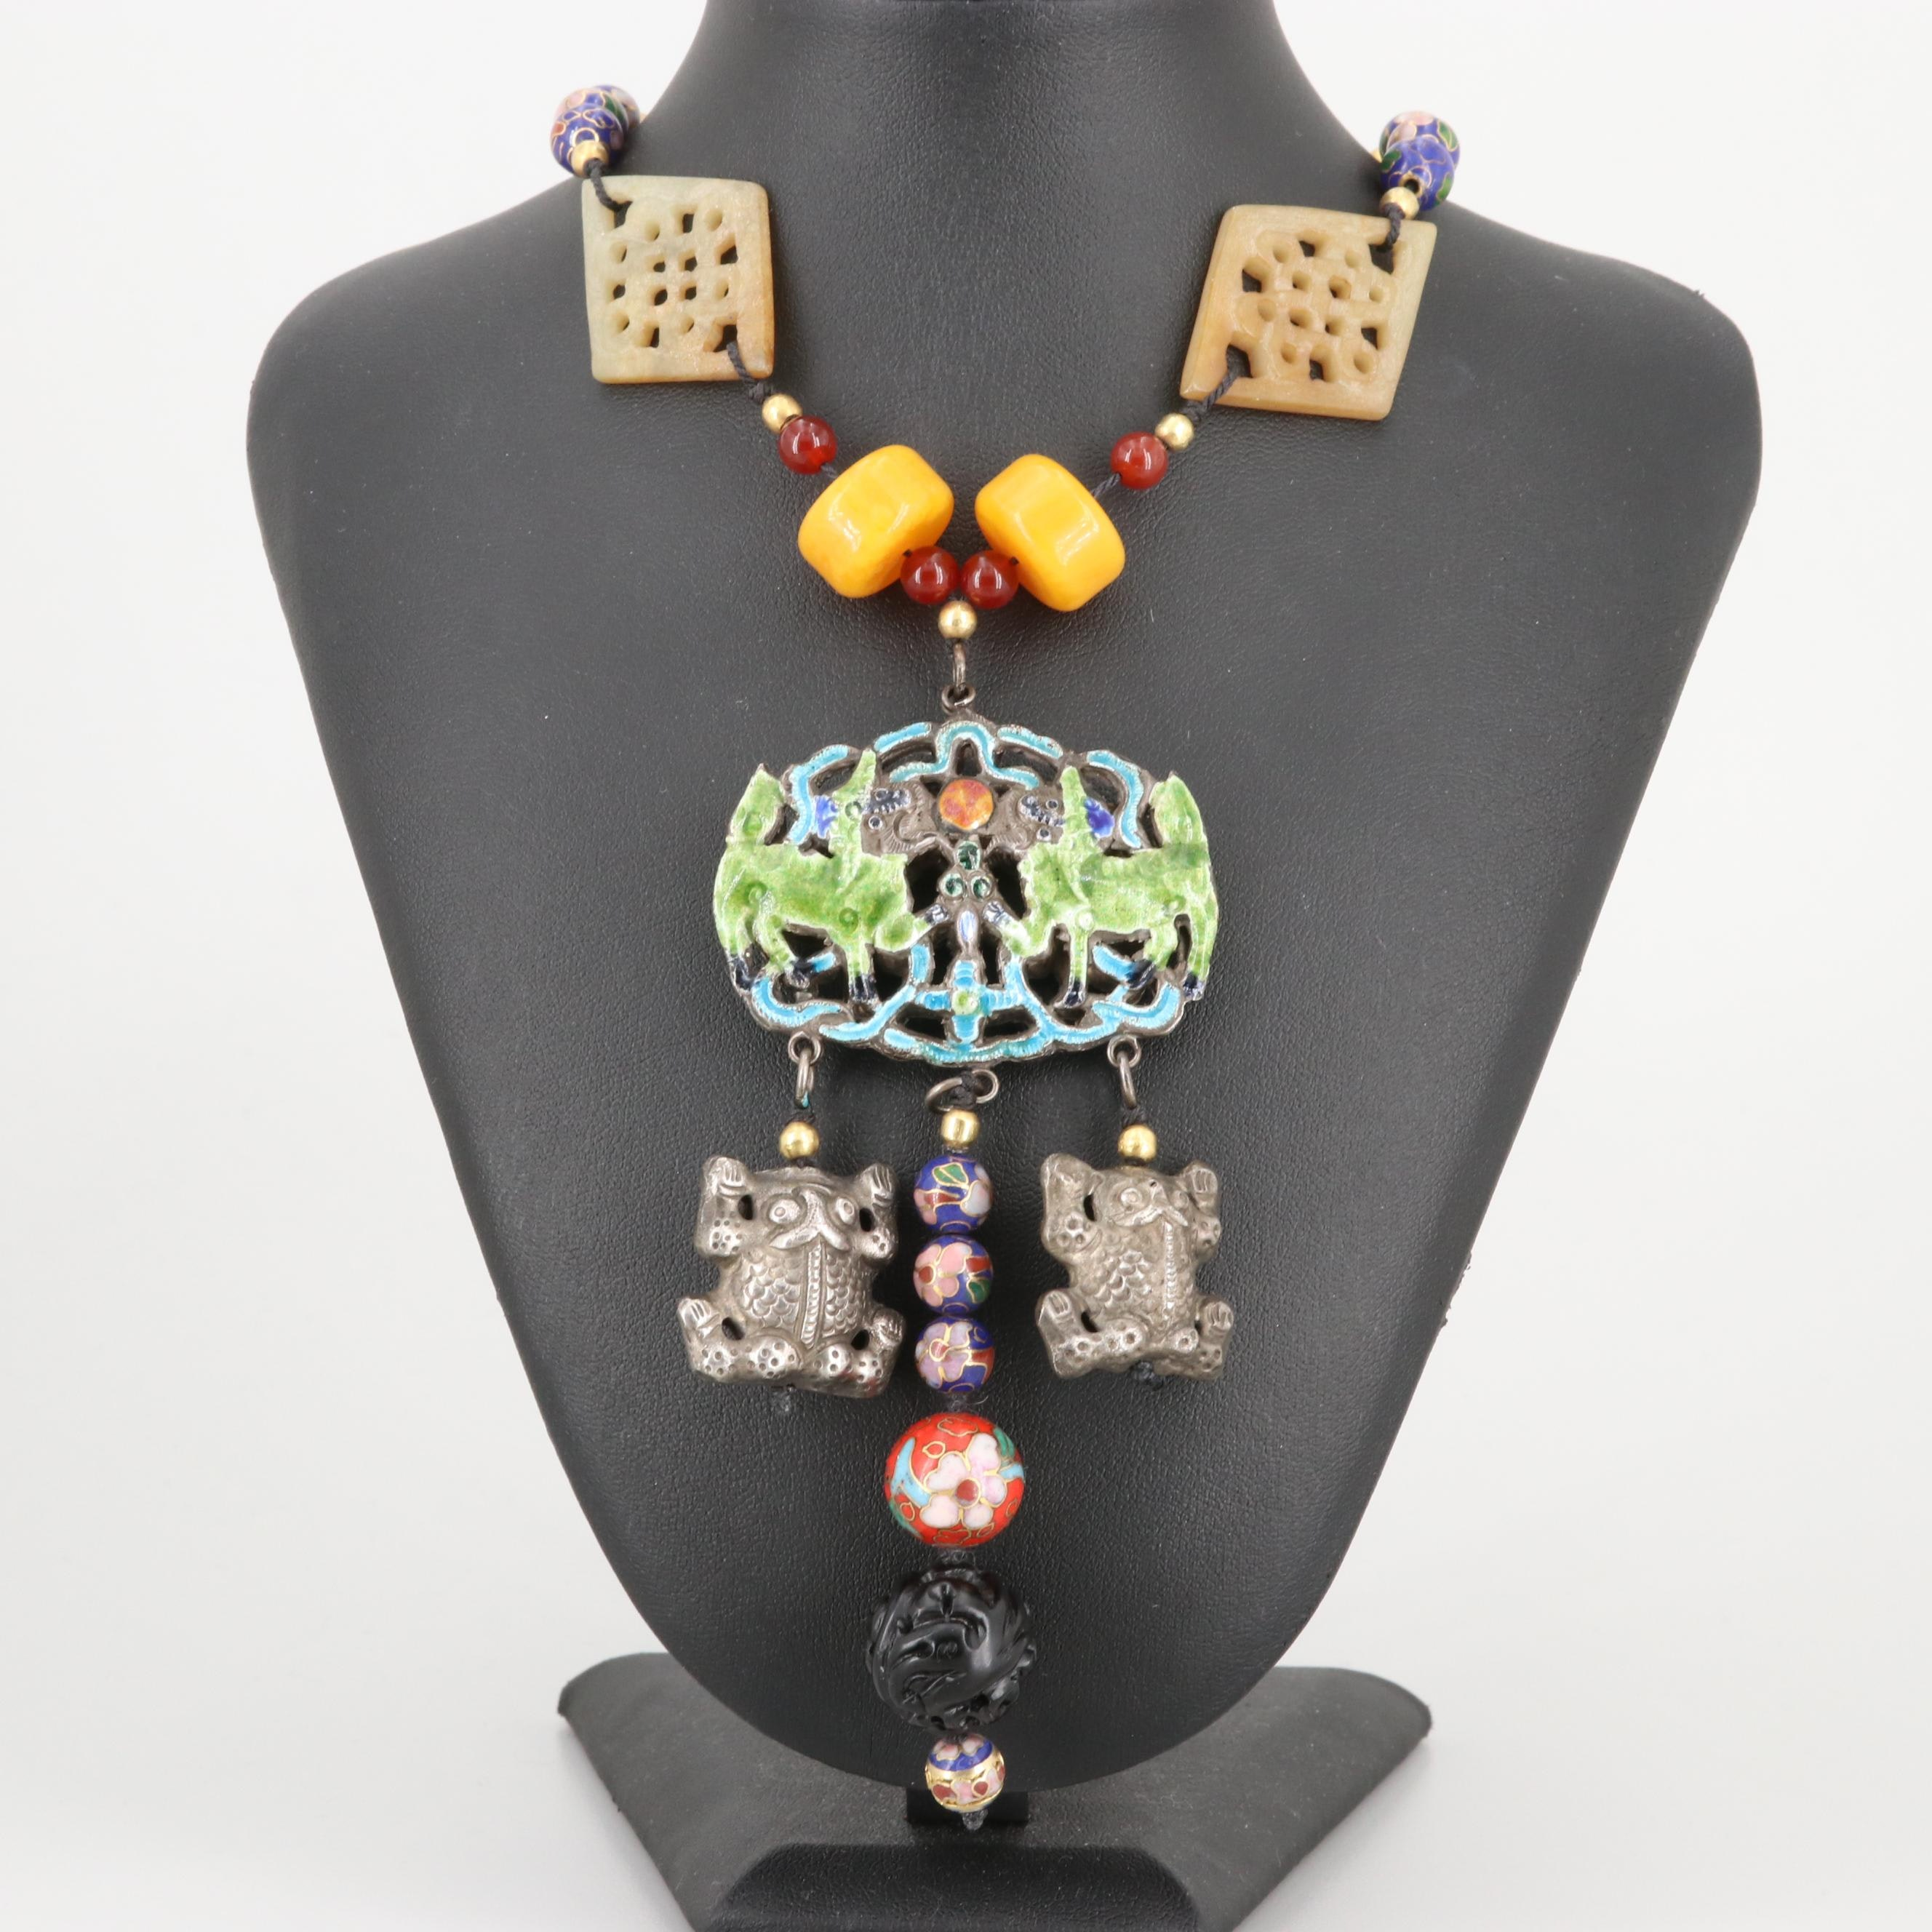 Asian Qilin Necklace with Carnelian, Serpentine and Cloisonné Beads